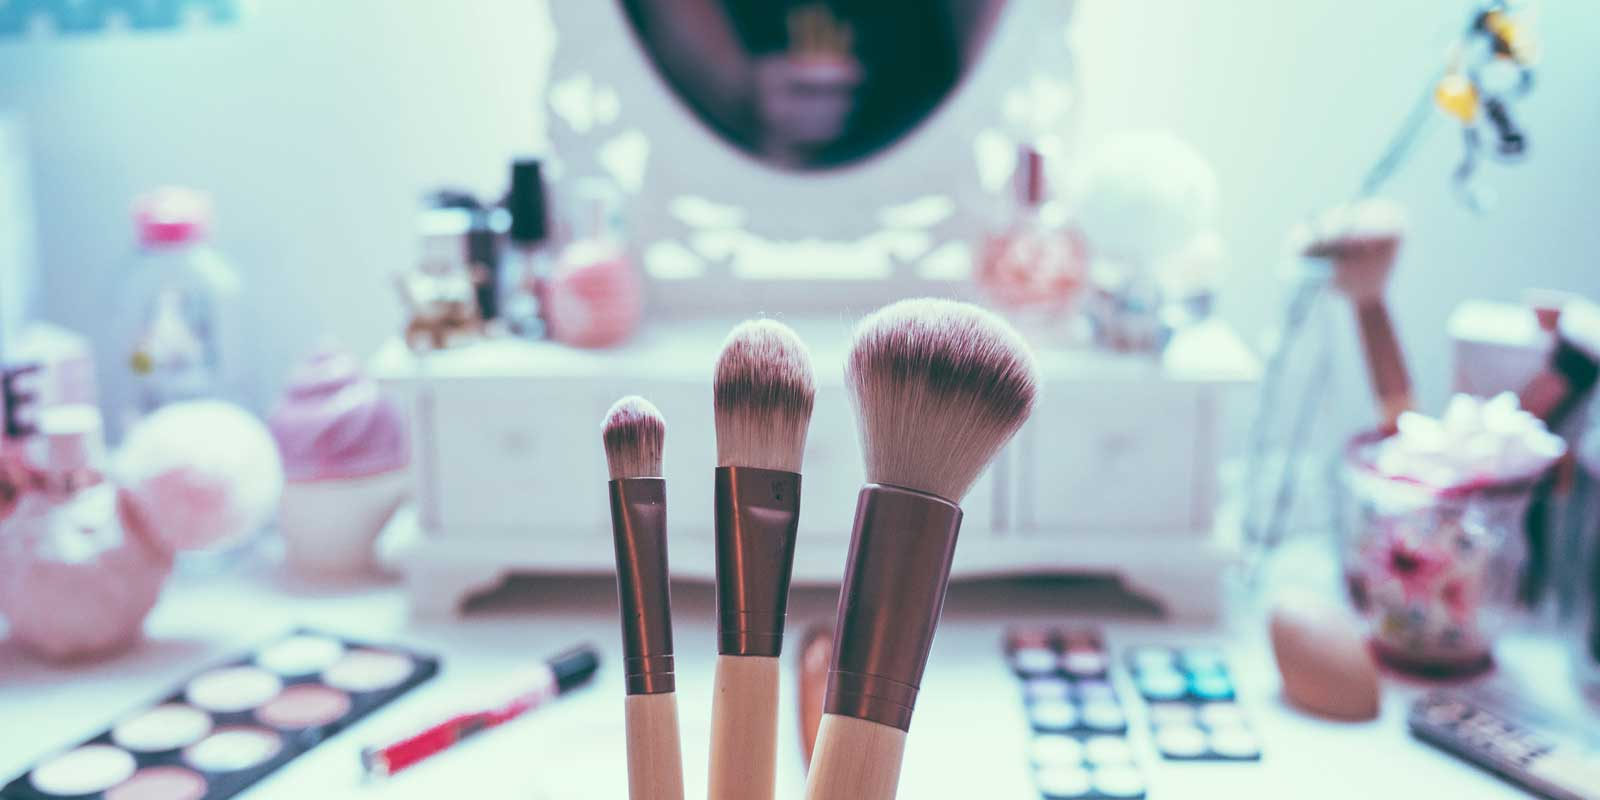 Protect your precious makeup brushes and beauty products with these makeup bags and cases for travel.